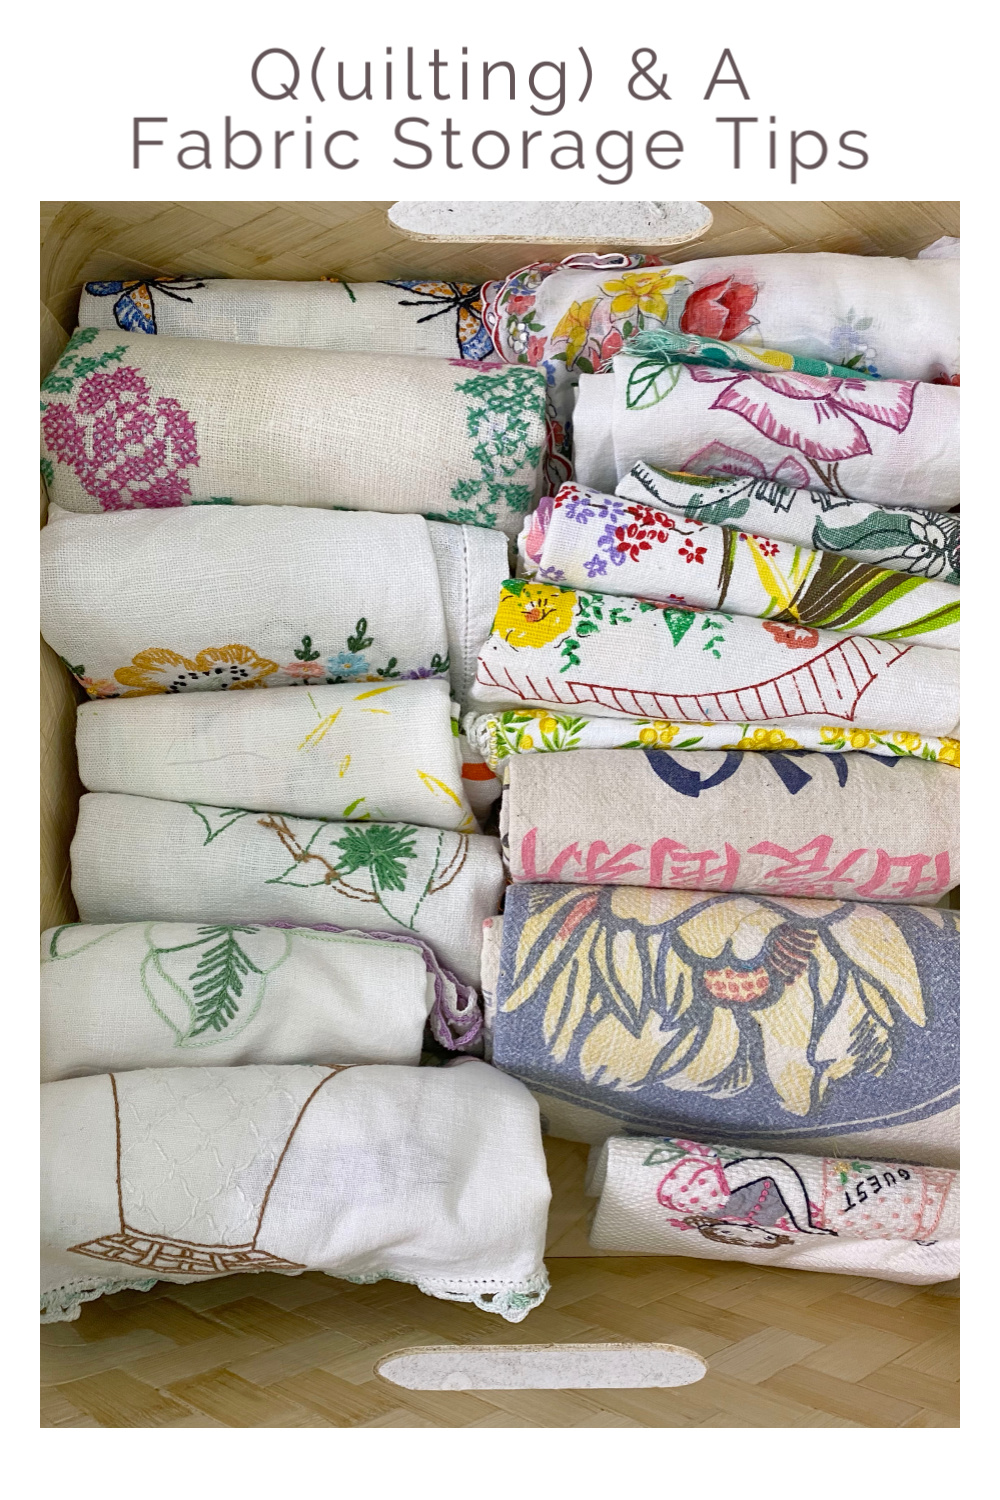 KonMari Fabric Storage Tips